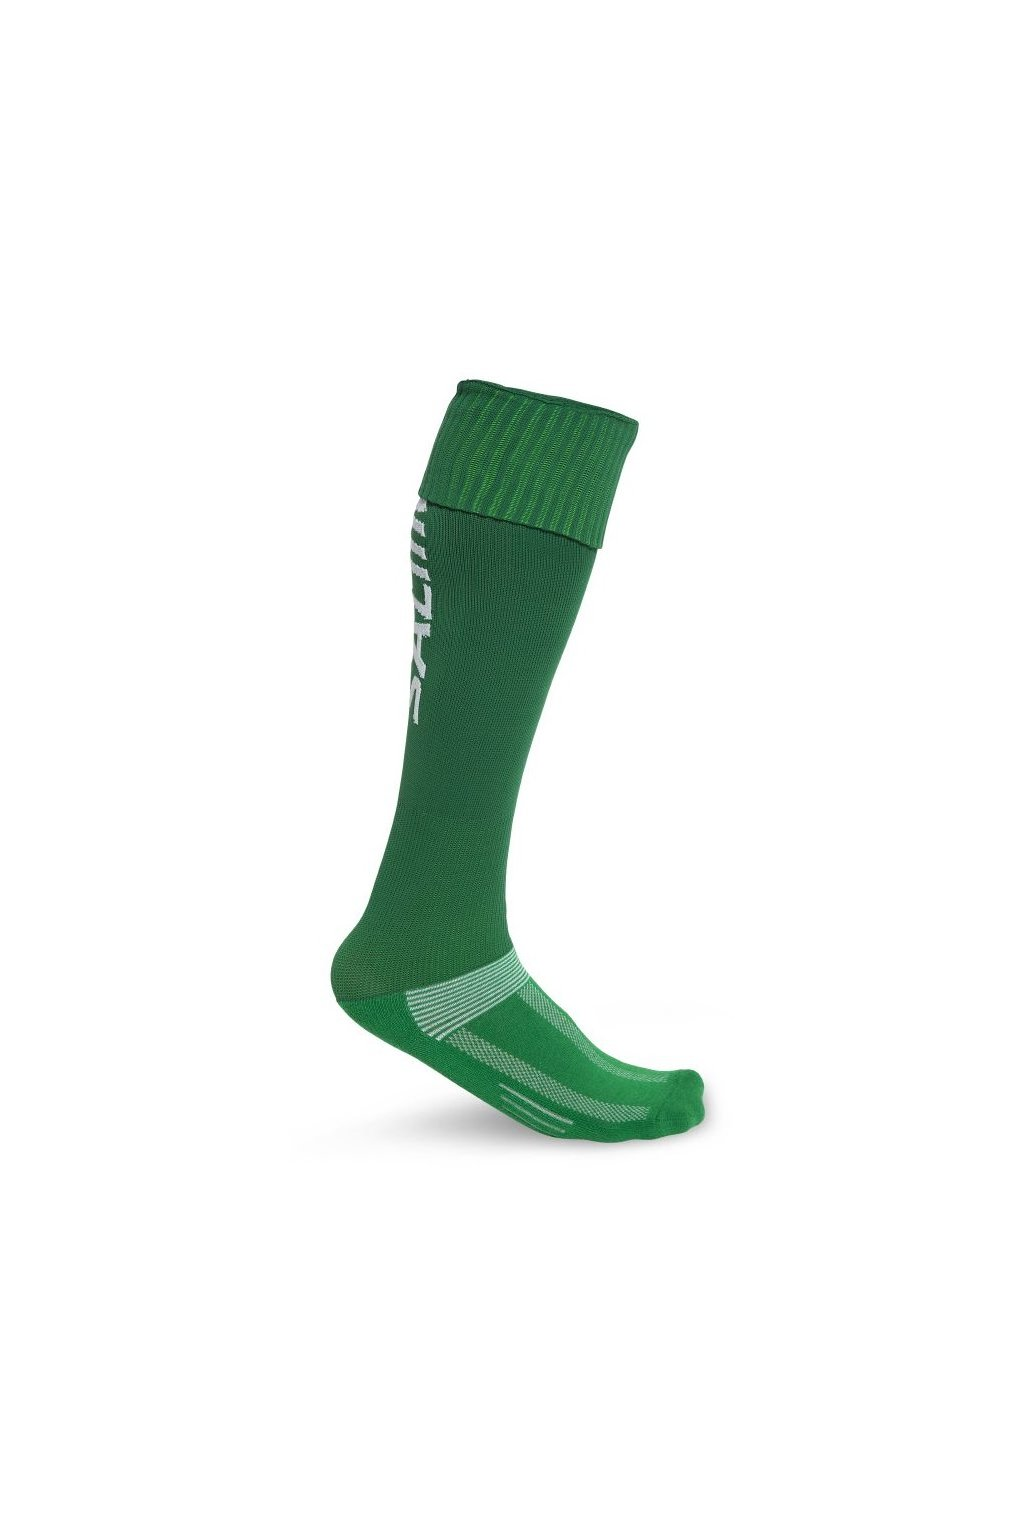 salming coolfeel teamsock long (3)